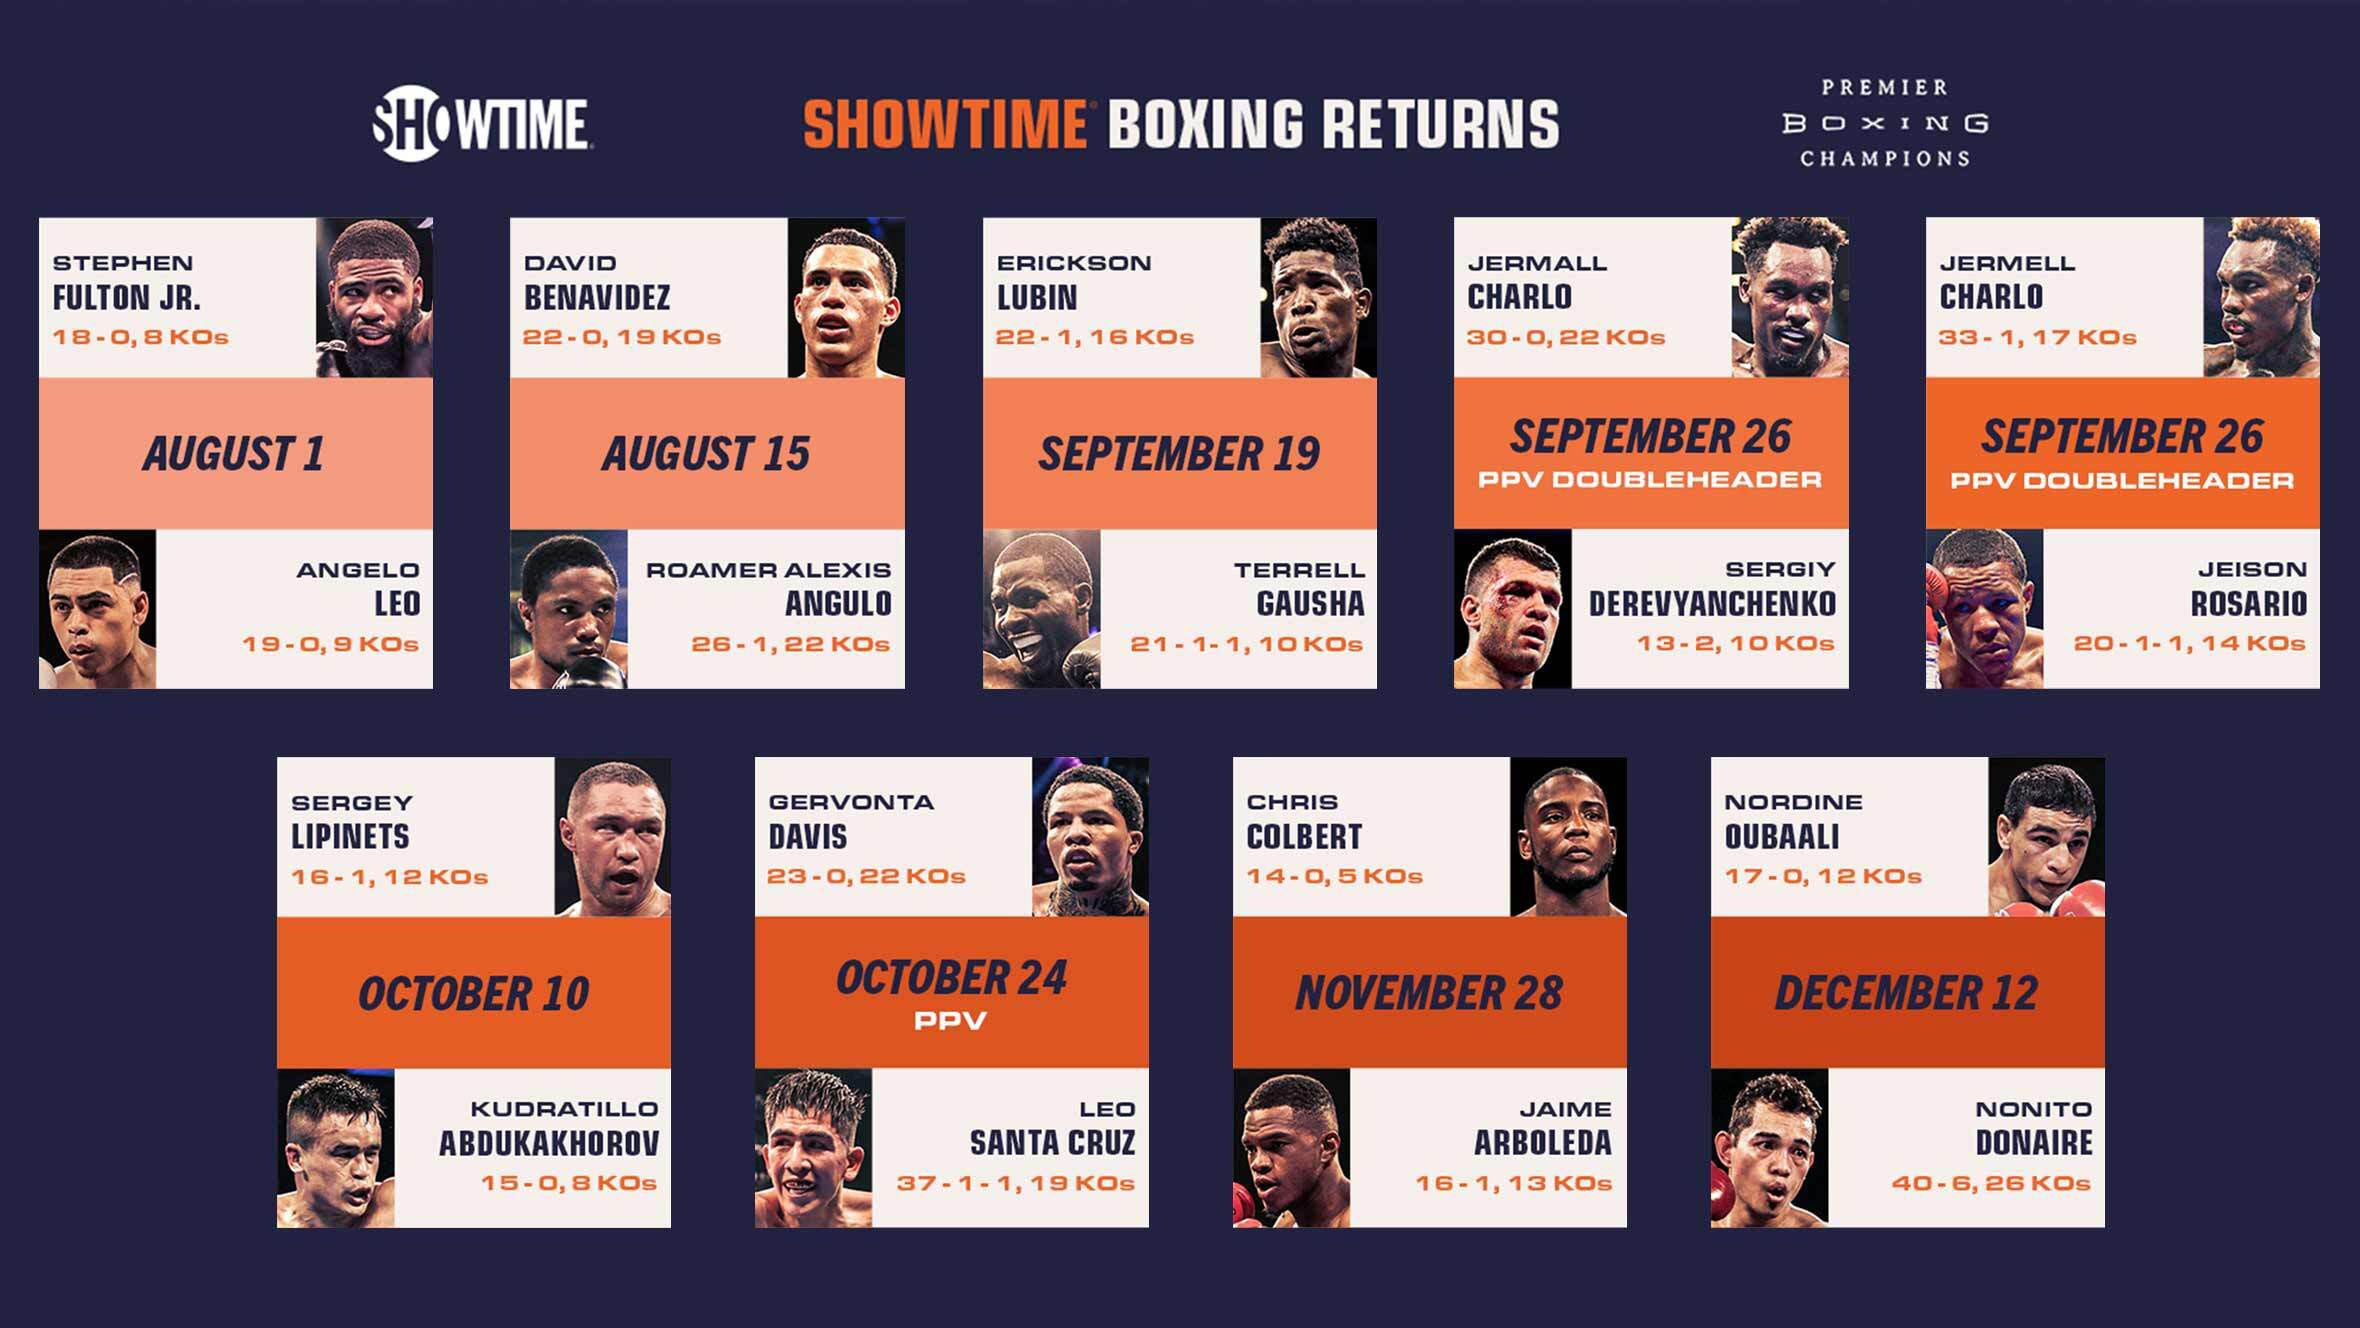 PBCSHOWTIME - Ranking Premier Boxing Champions Top 5 Fights to Watch From Their Recent Schedule Release on SHOWTIME